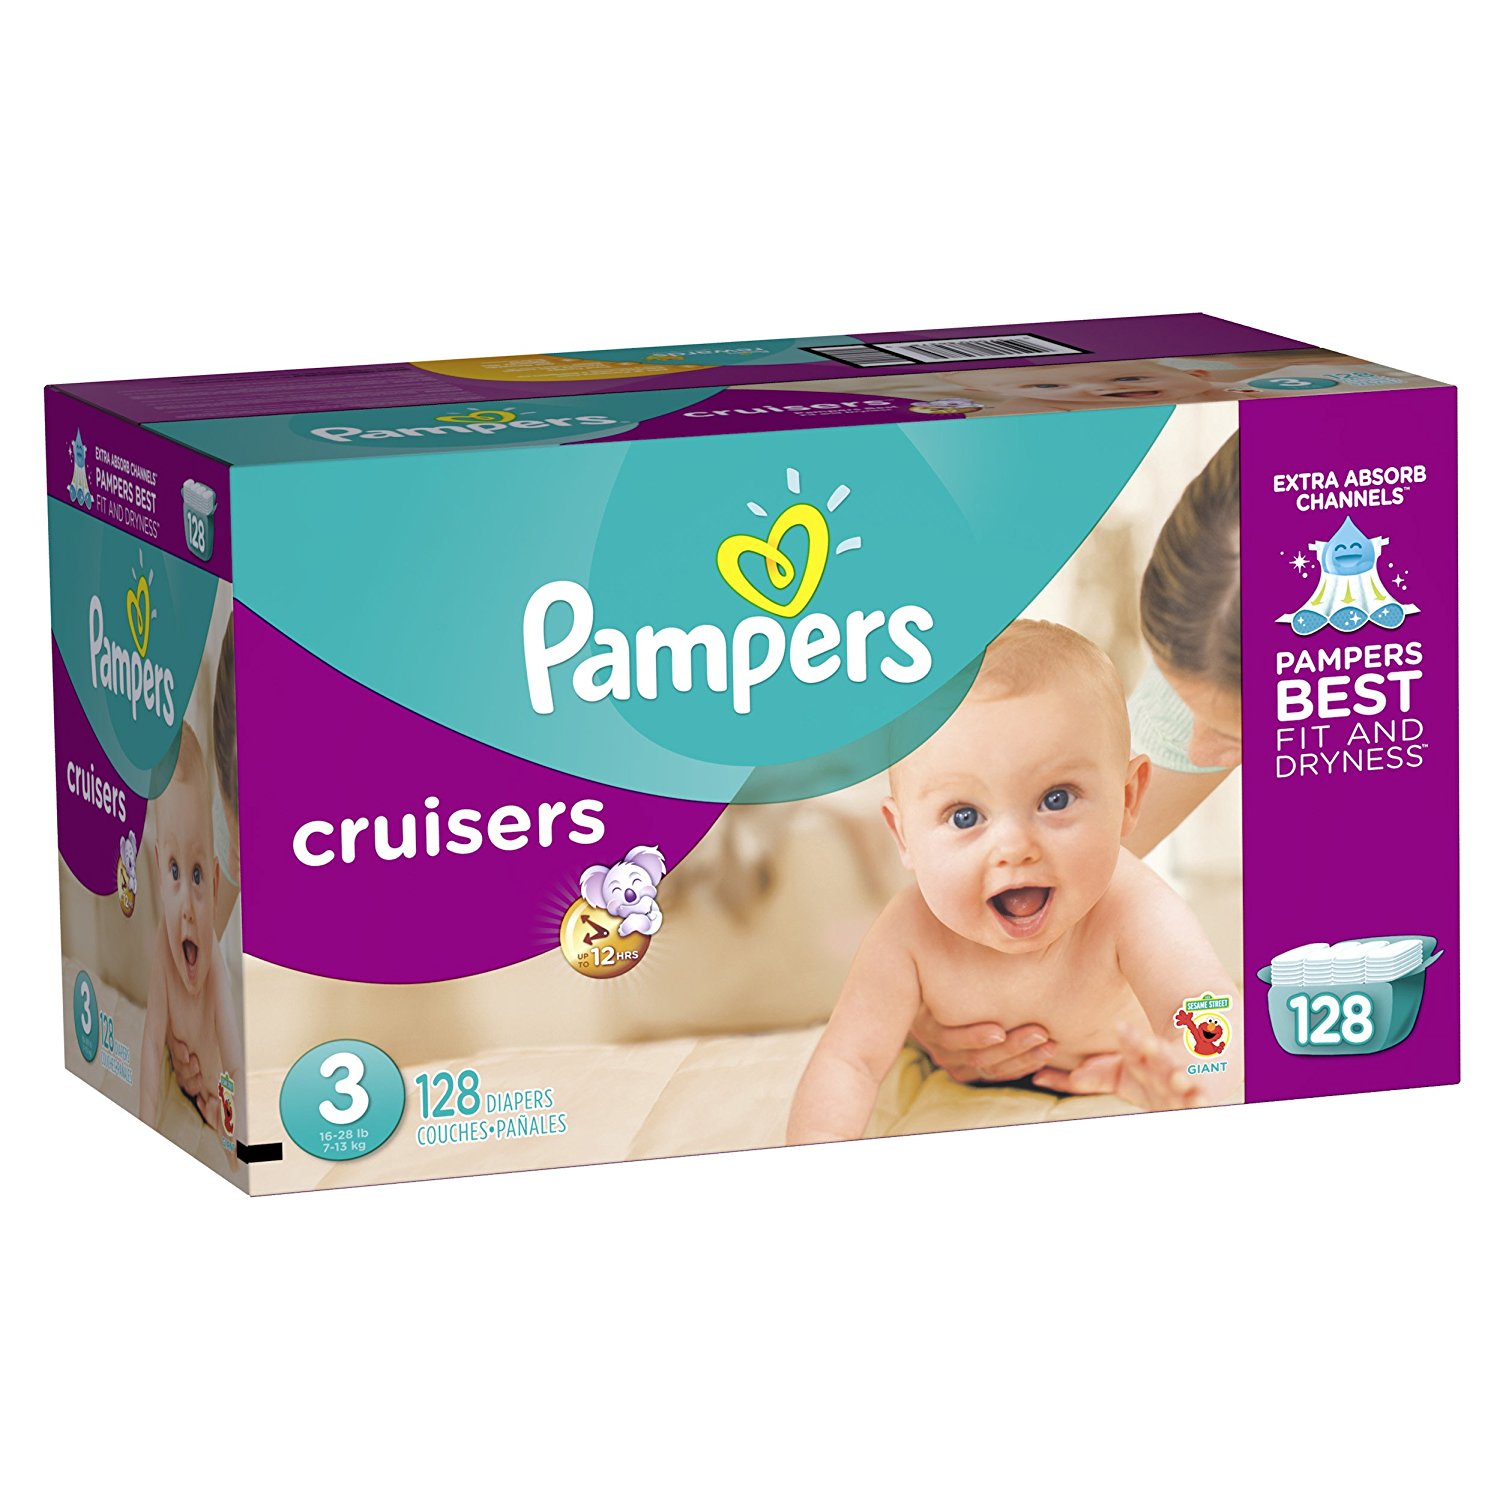 pampers cruisers diapers, disposable diapers, best disposable diapers